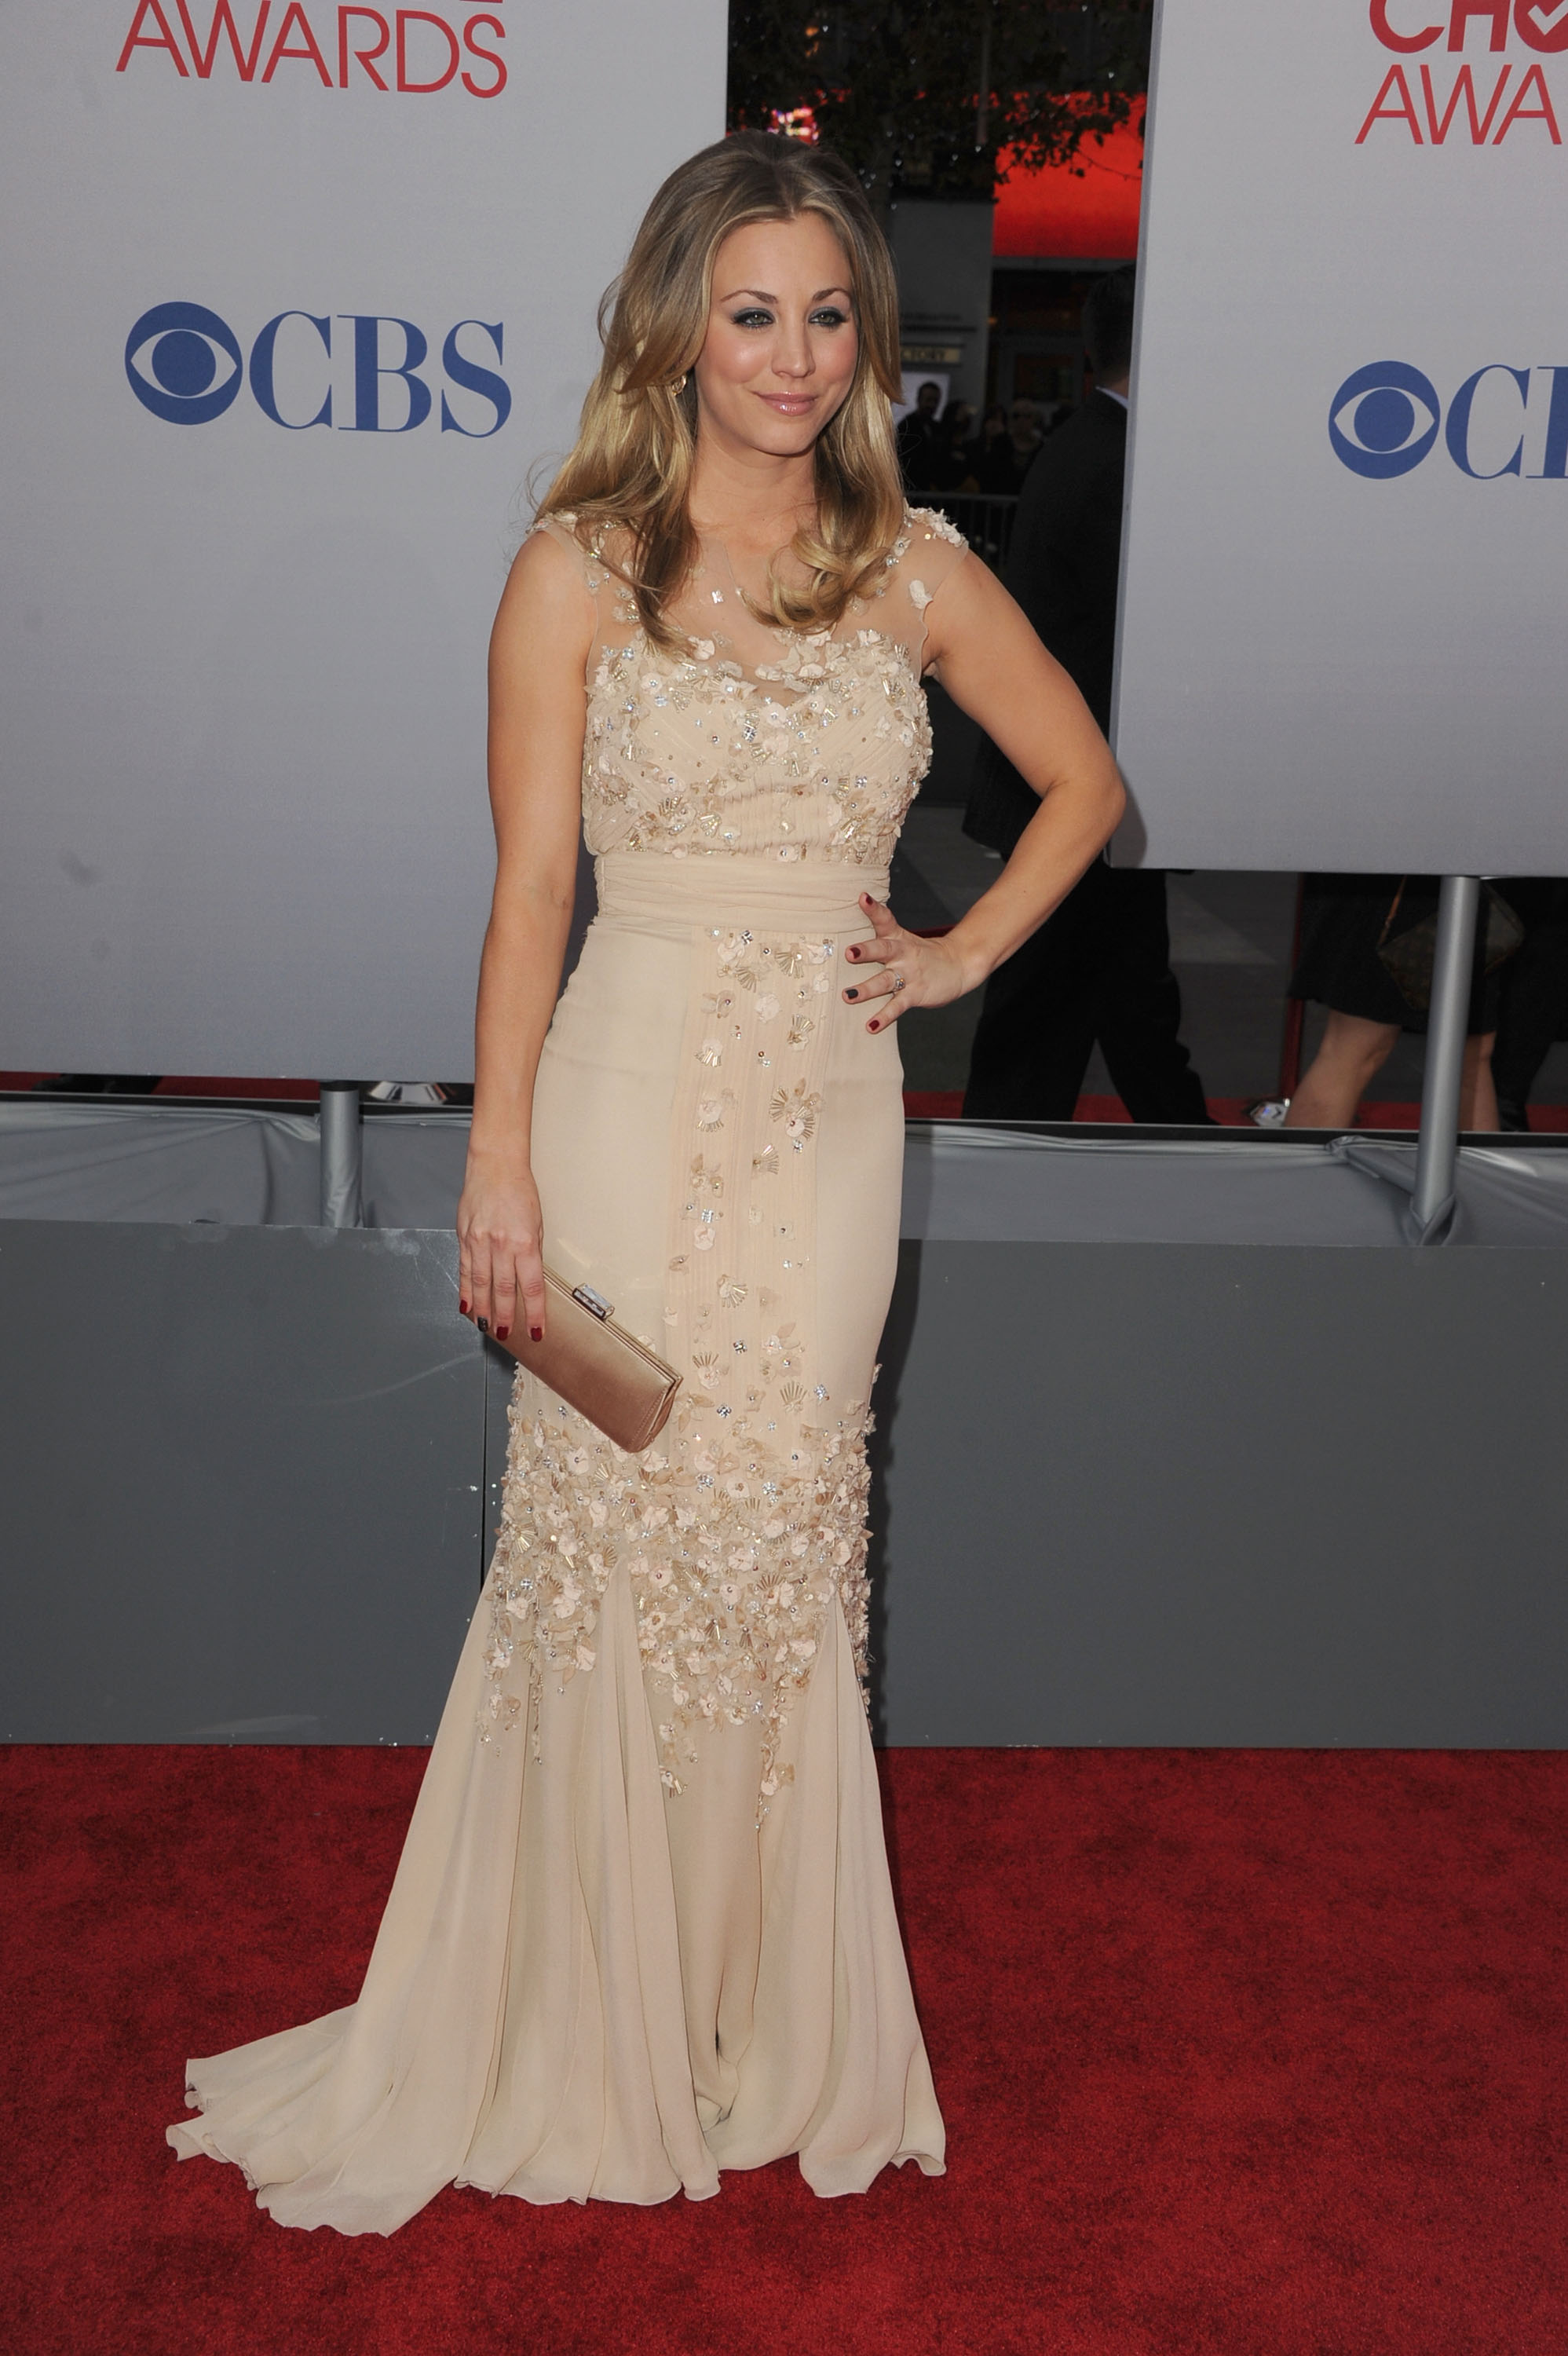 Kaley Cuoco on the red carpet .